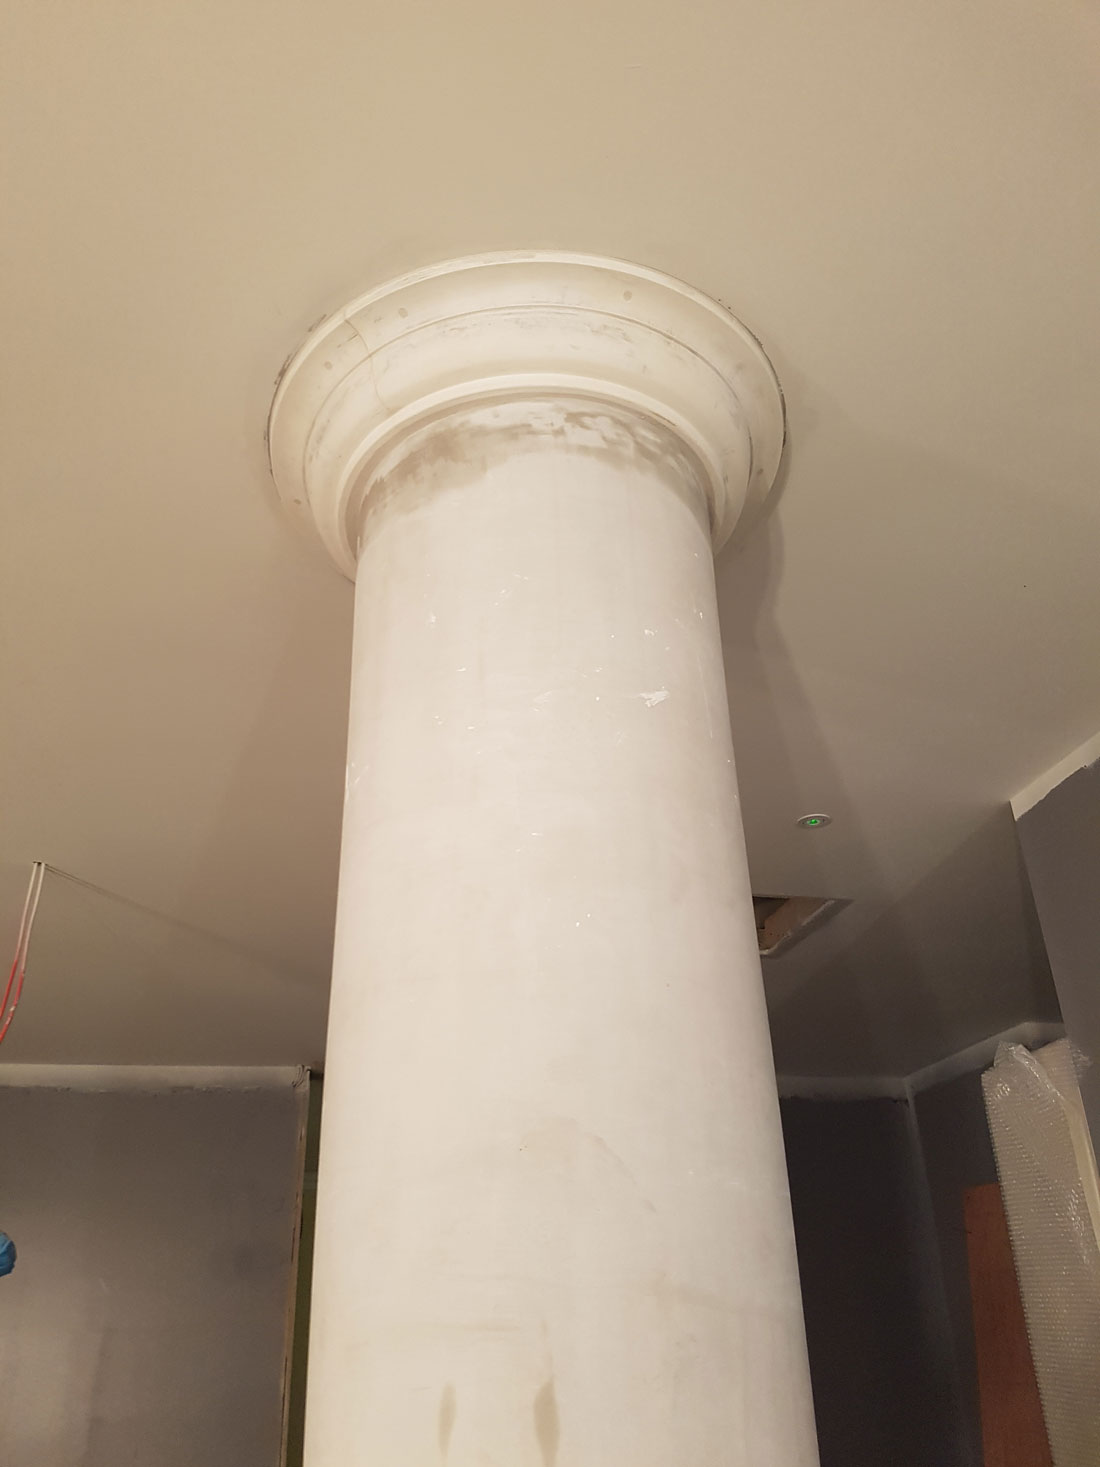 Column Casings